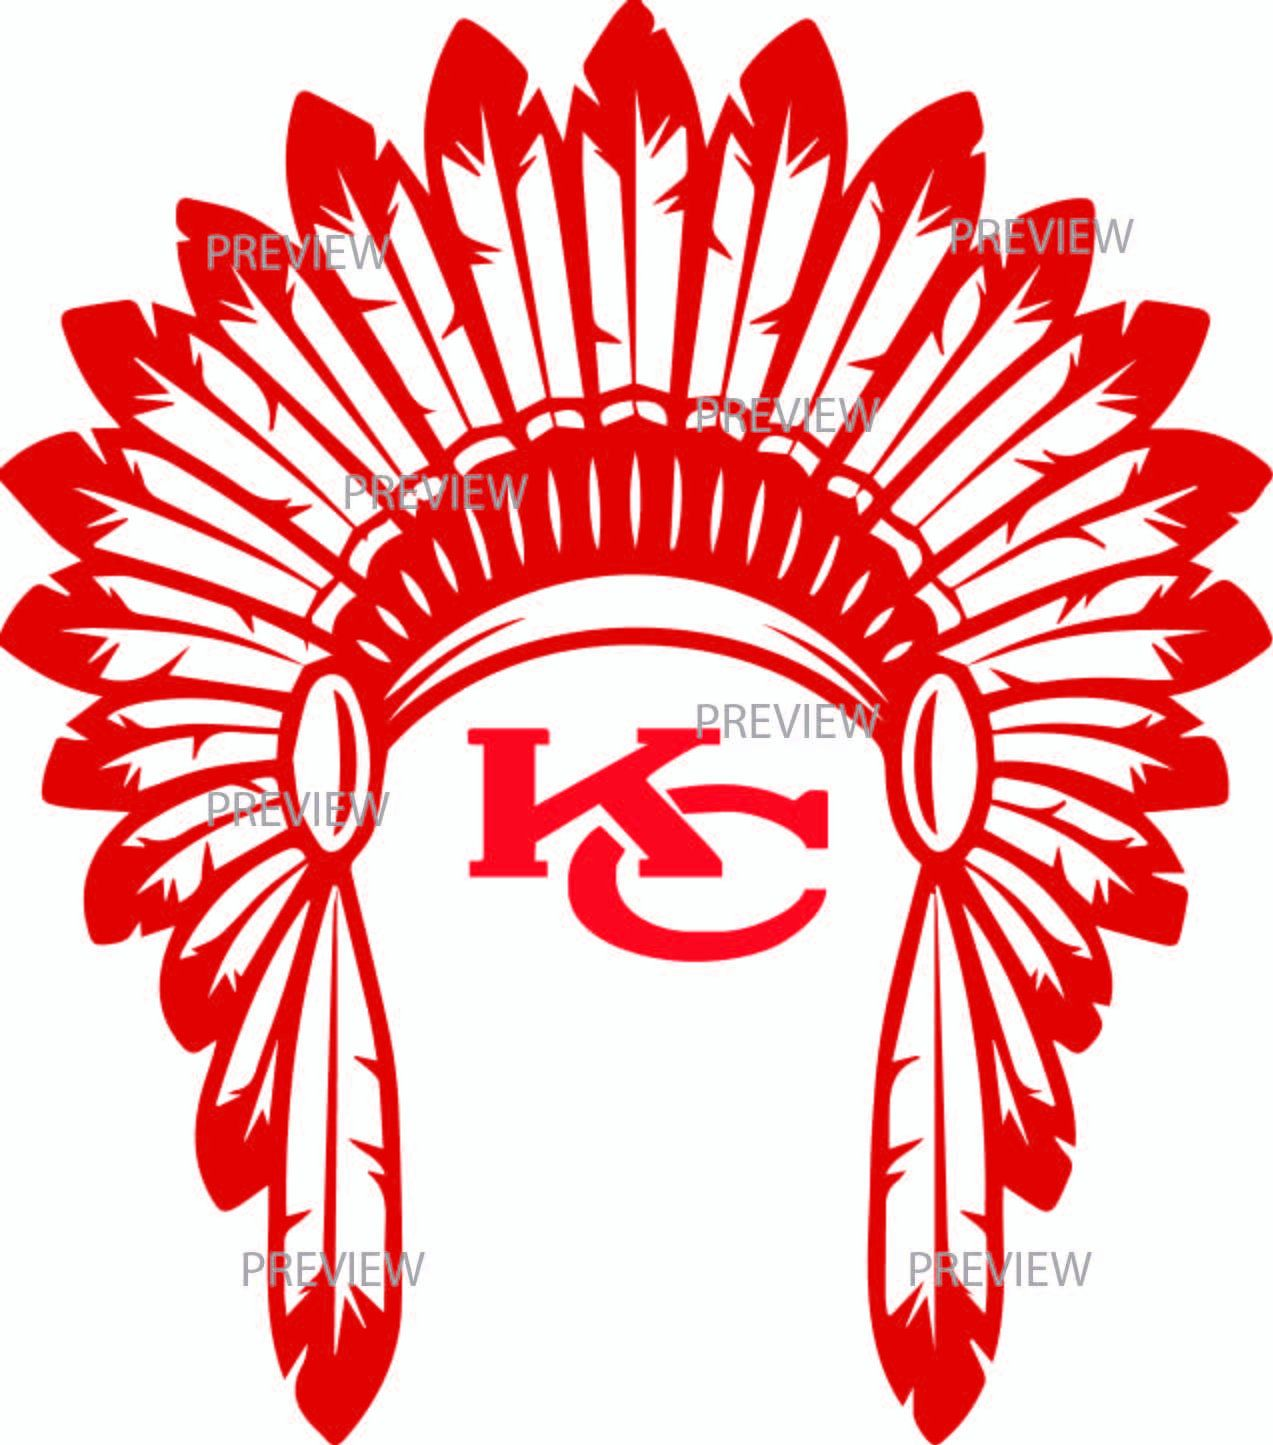 Pin By Lynette Wolfe On Kansas City Chiefs In 2020 Kansas City Chiefs Craft Kansas City Chiefs Funny Kansas City Chiefs Logo